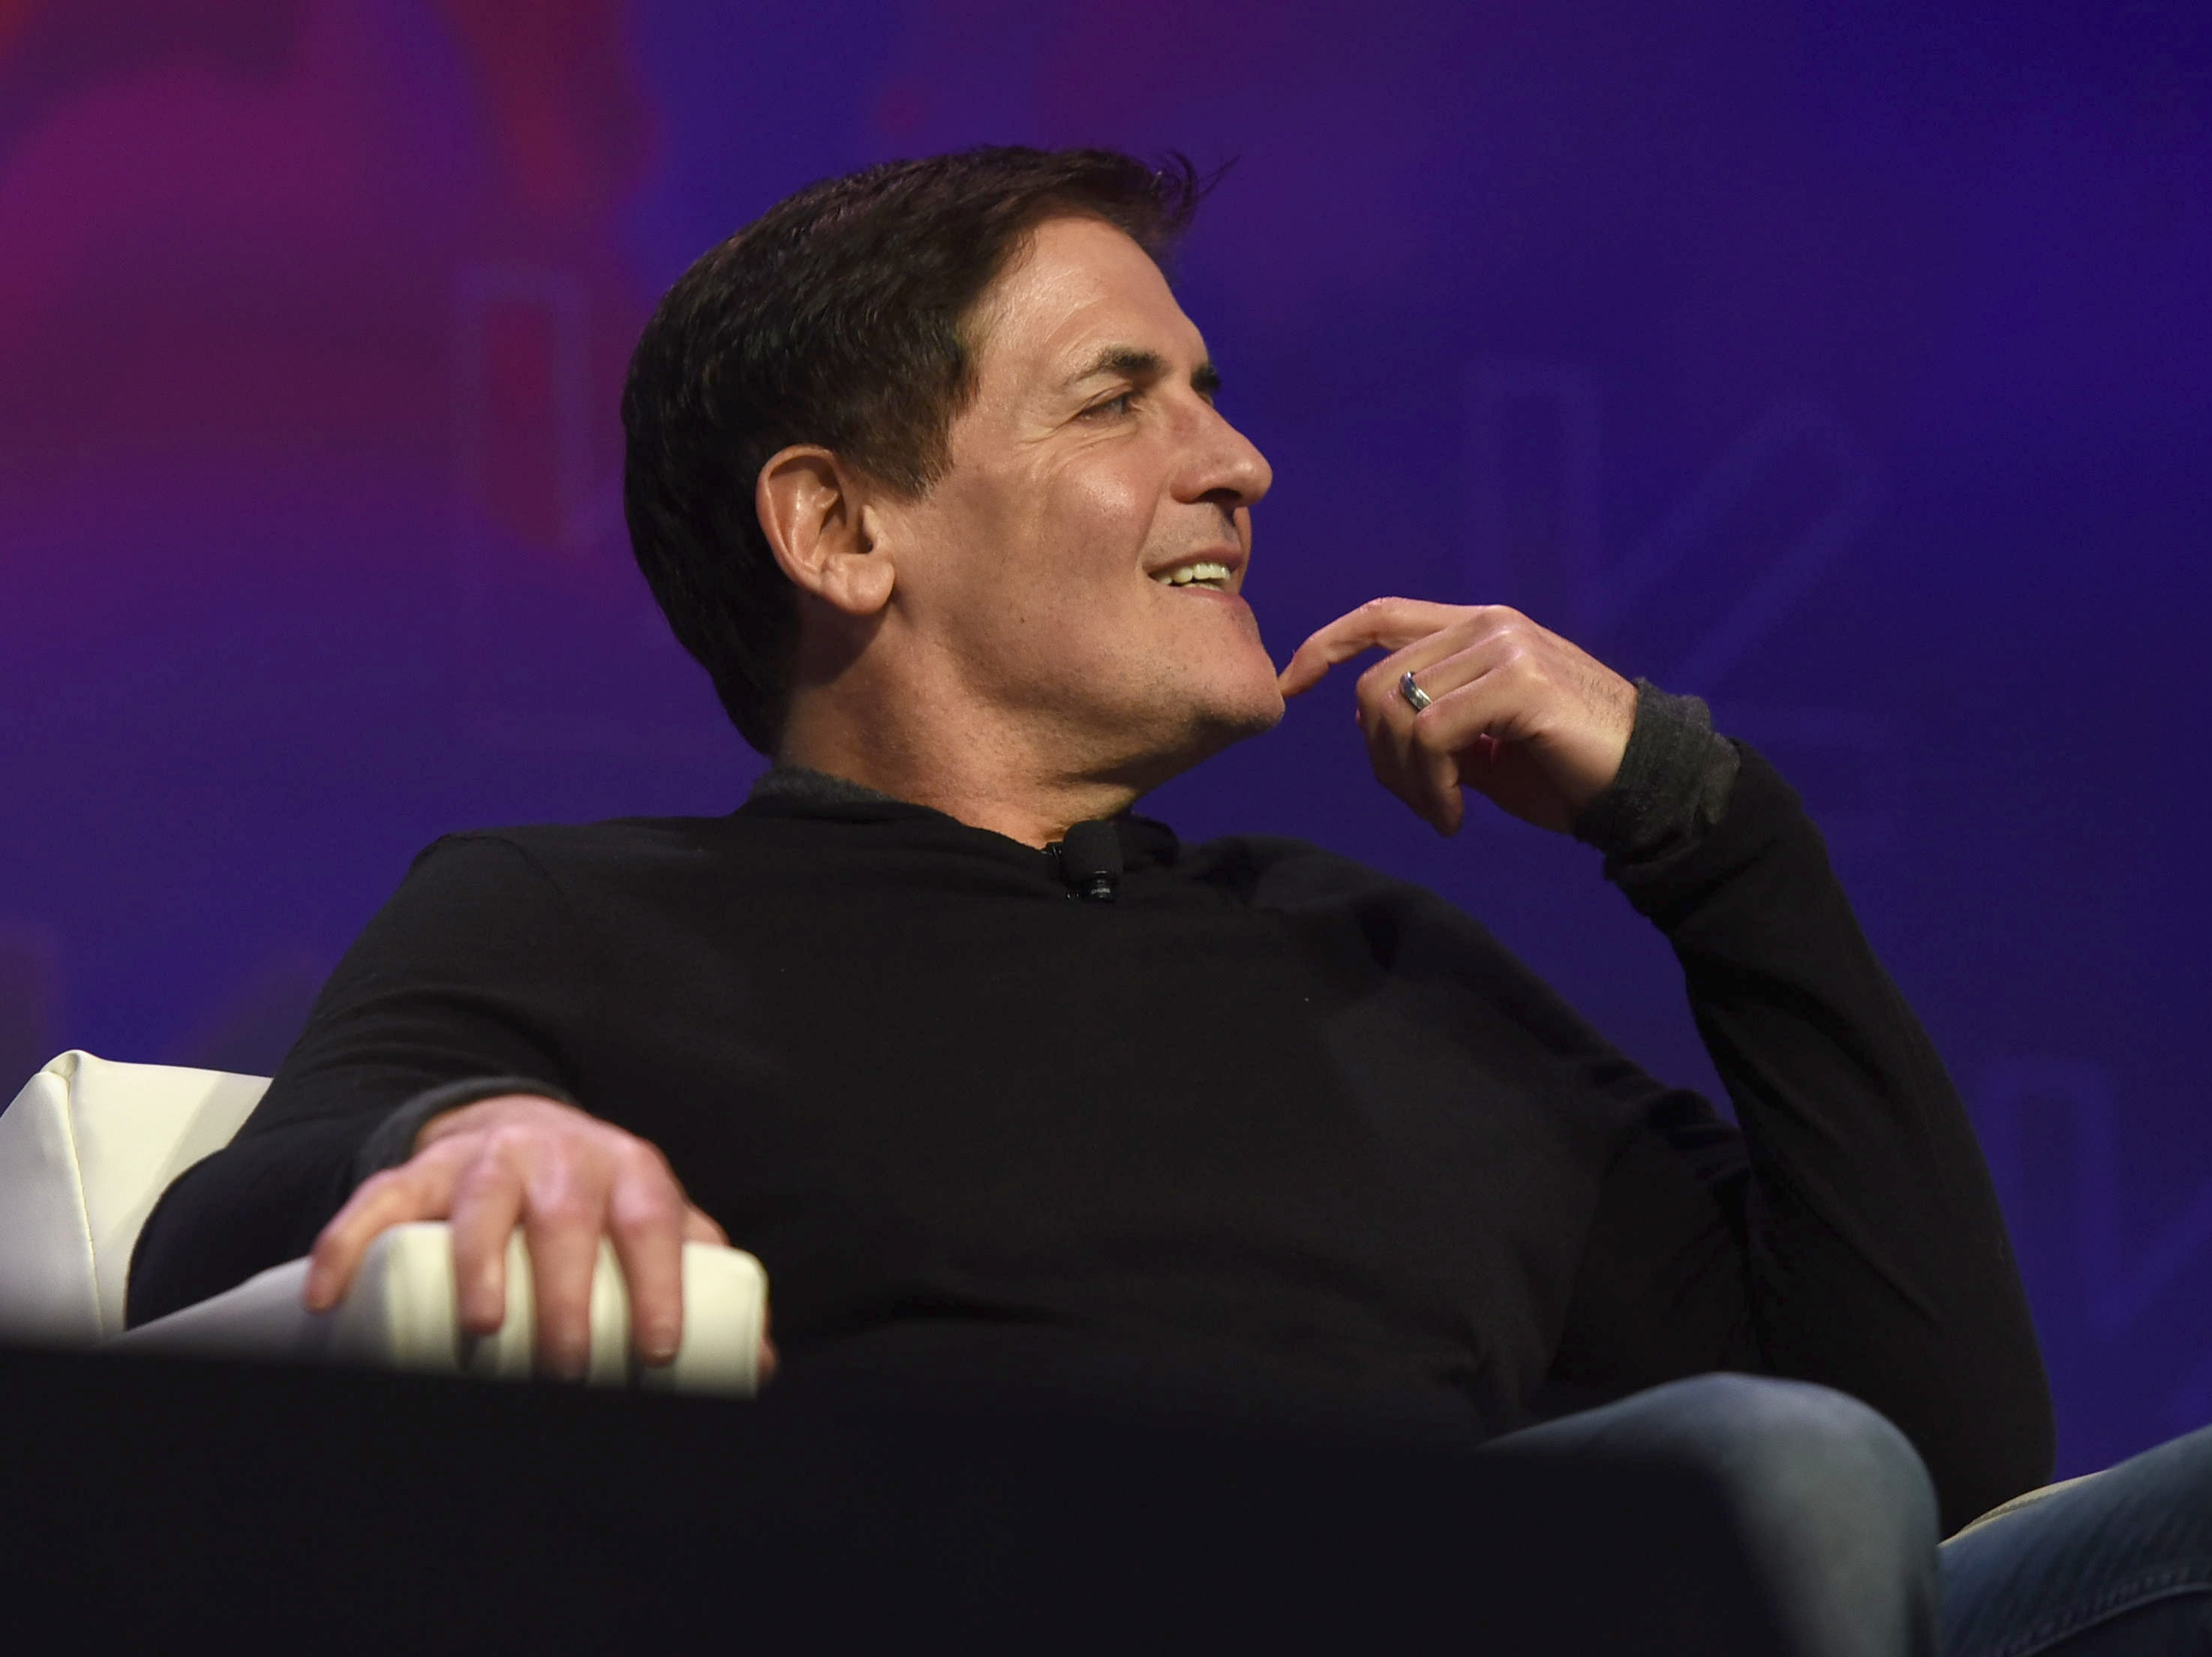 Mark Cuban & Tech Execs: Is Govt Disrupting Disruption? - 2017 SXSW Conference and Festivals